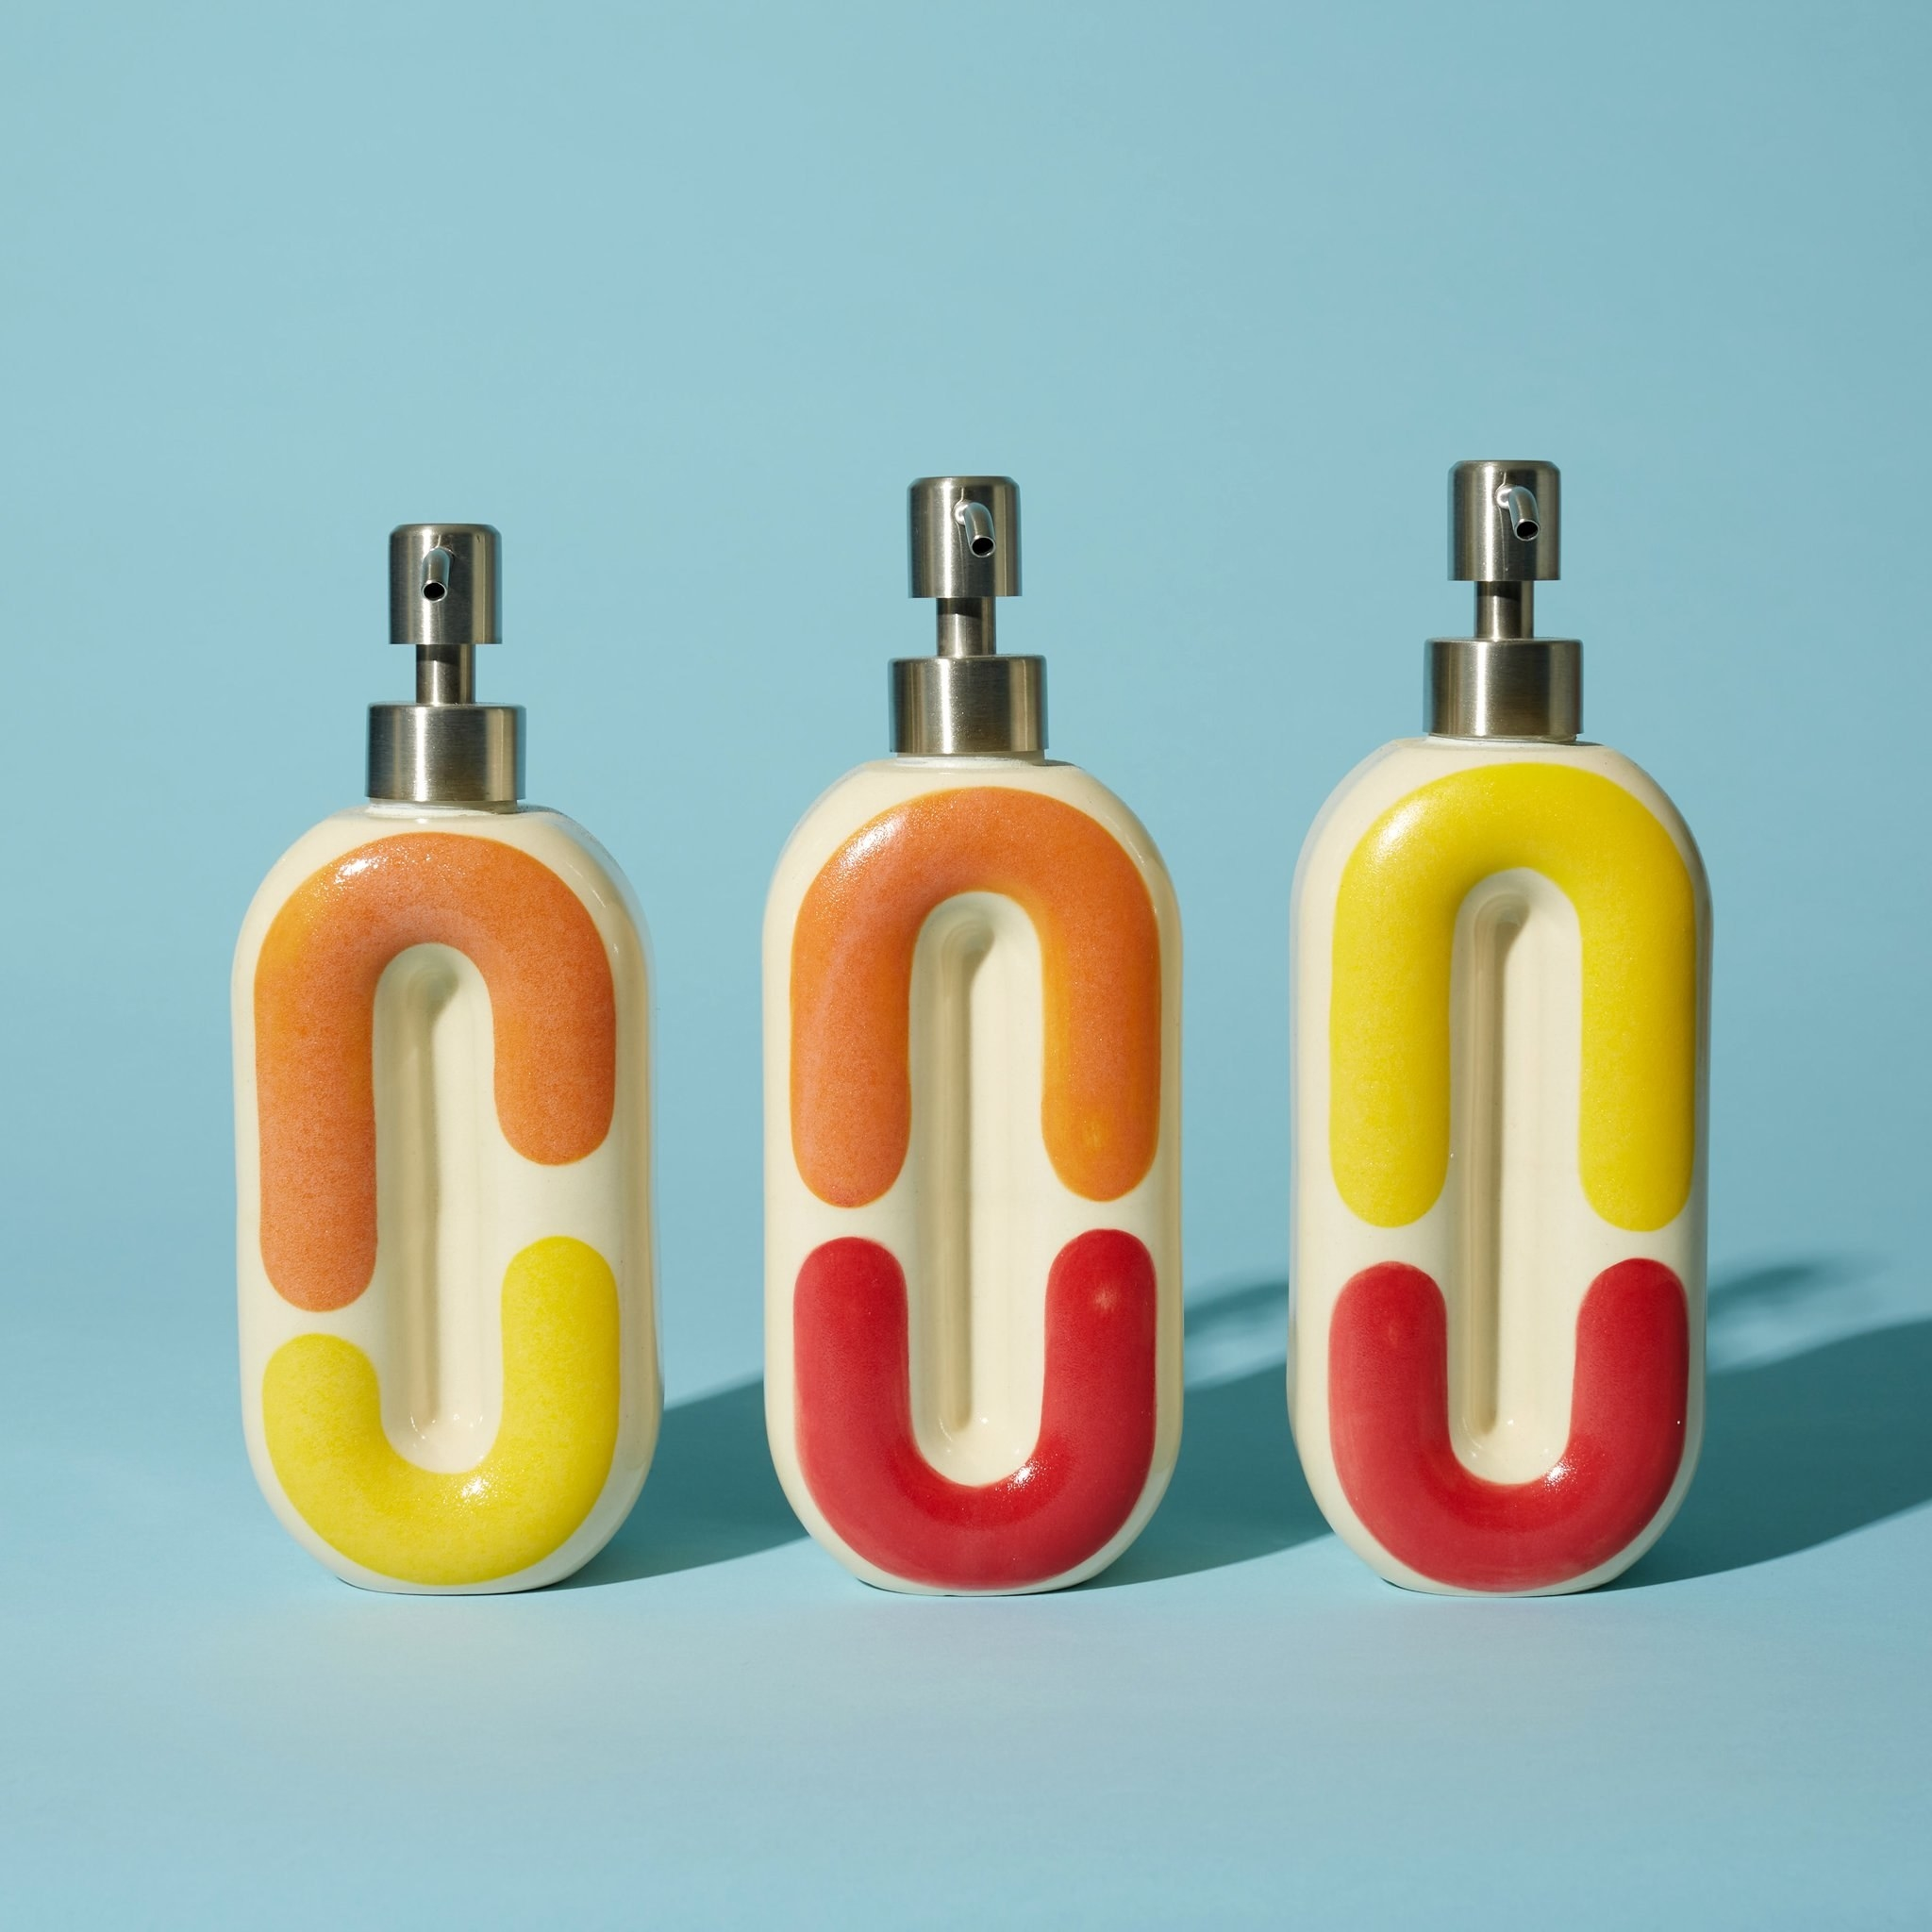 three pump bottles with squiggle designs in various combinations of red, yellow, and orange